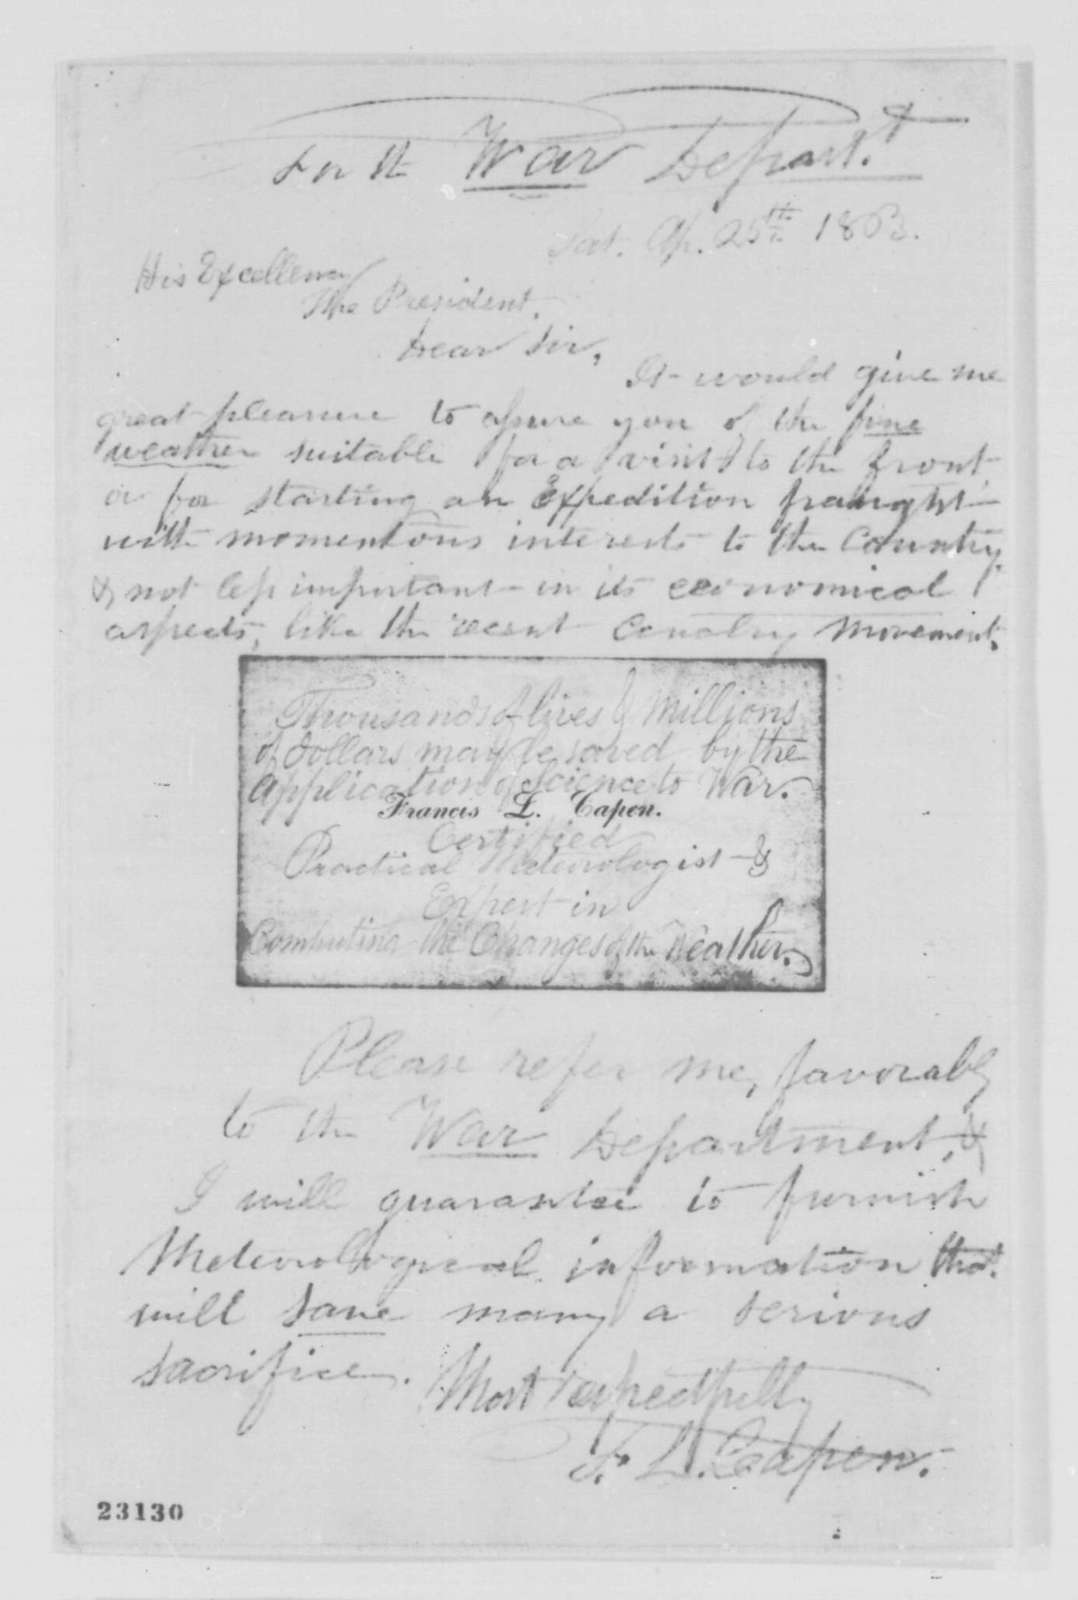 Francis L. Capen to Abraham Lincoln, Saturday, April 25, 1863  (Requests recommendation to War Department so that he can obtain a position as weather forecaster; endorsed by Lincoln, April 28, 1863)